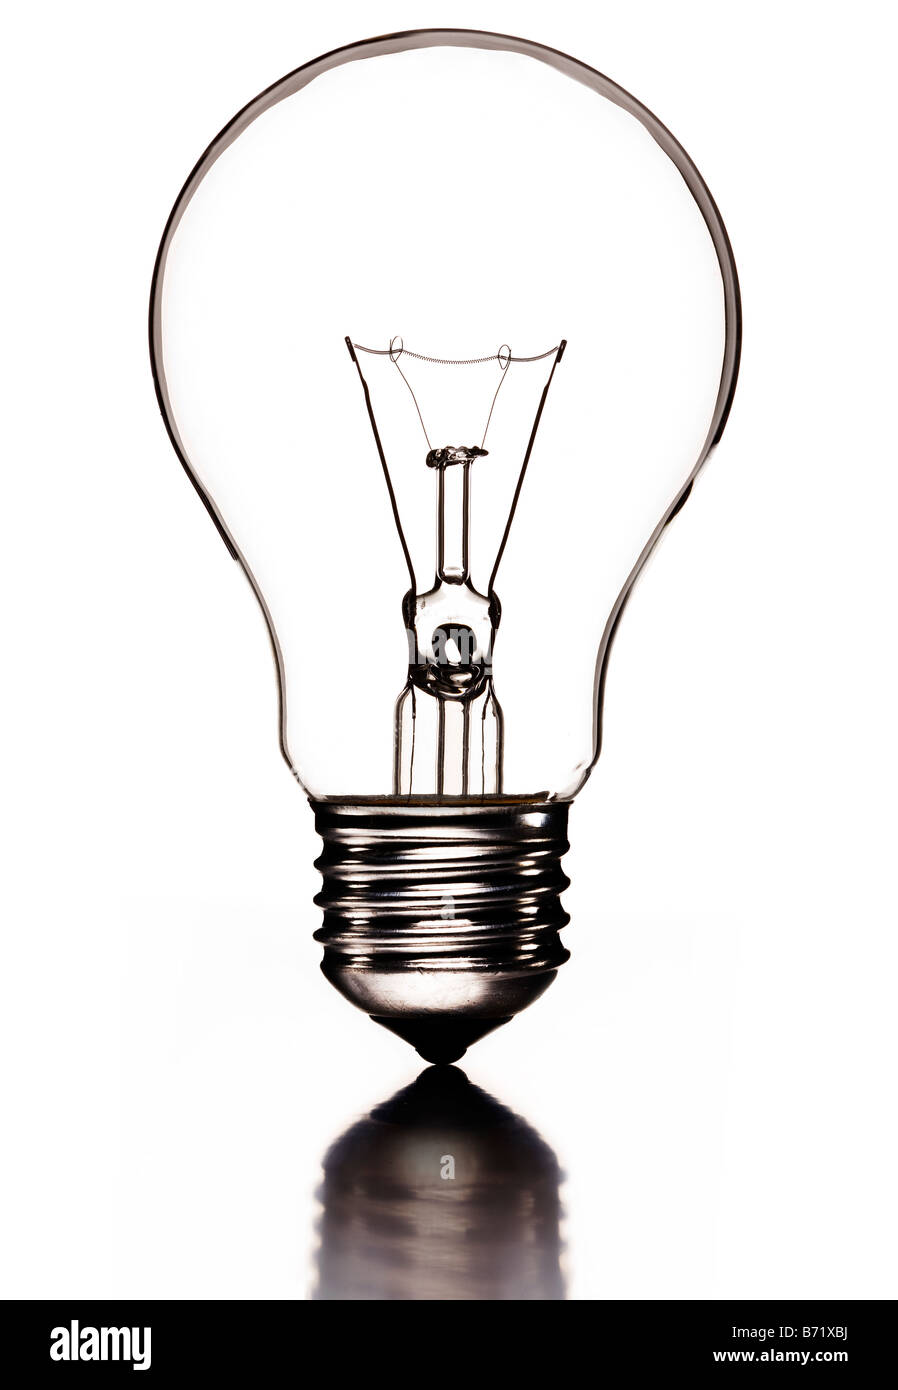 """Transparent lightbulb with filament and Edison Screw or """"ES"""" lamp fitting - Stock Image"""